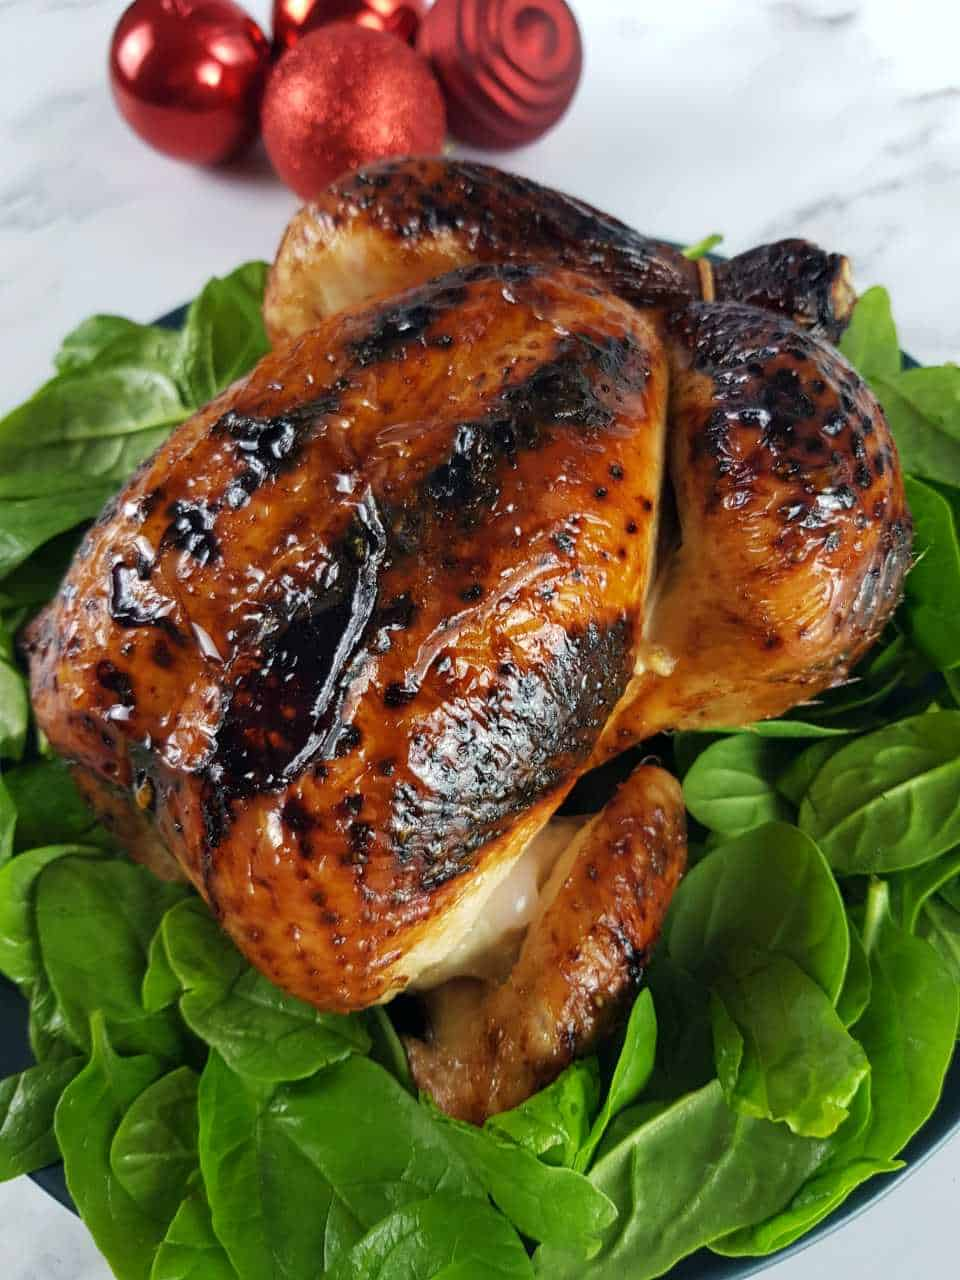 Roast chicken with honey on a bed of spinach.